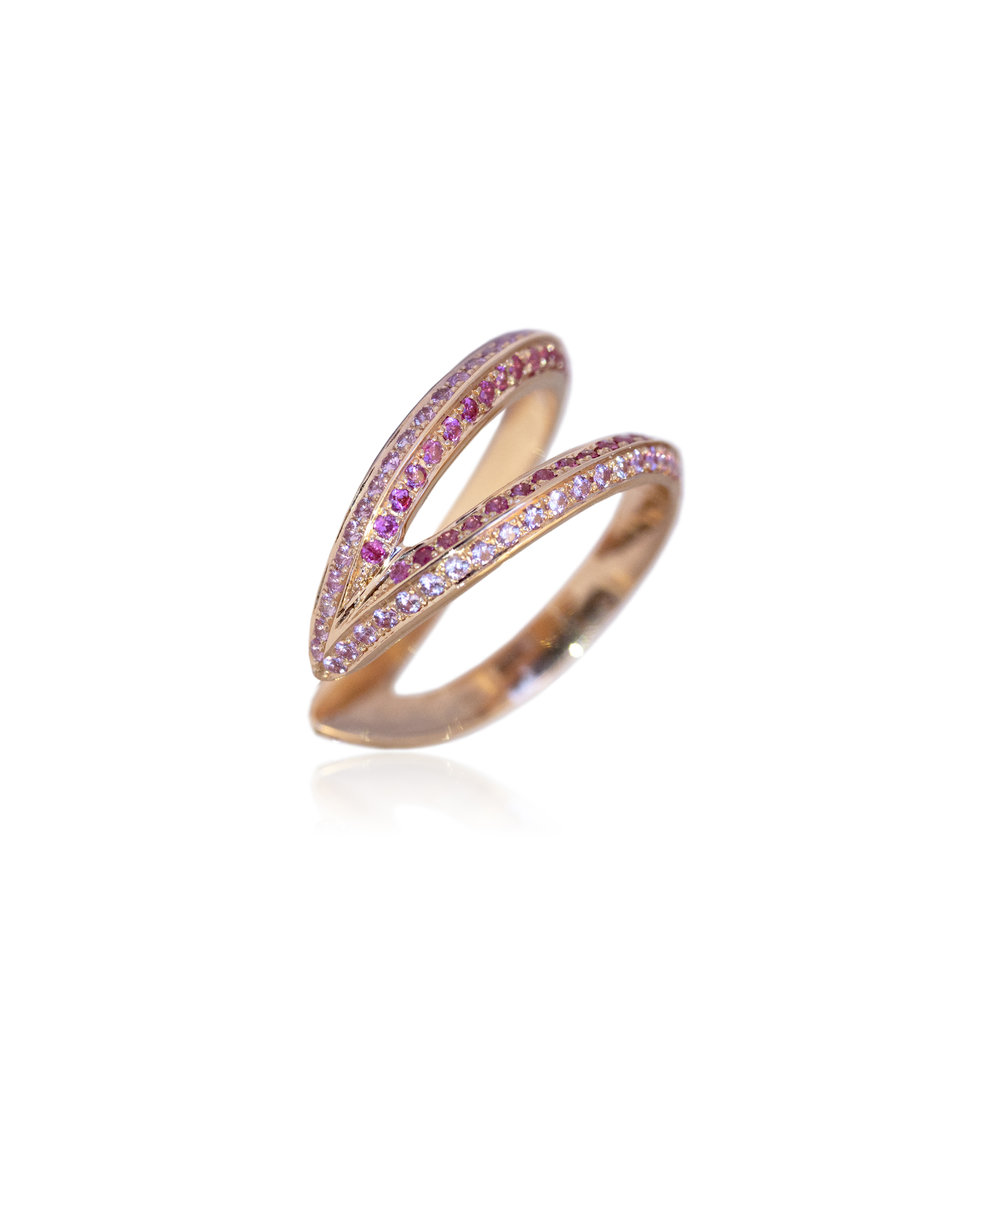 Ring  18KT Rose Gold, Pink Sapphires  REF. MOW266